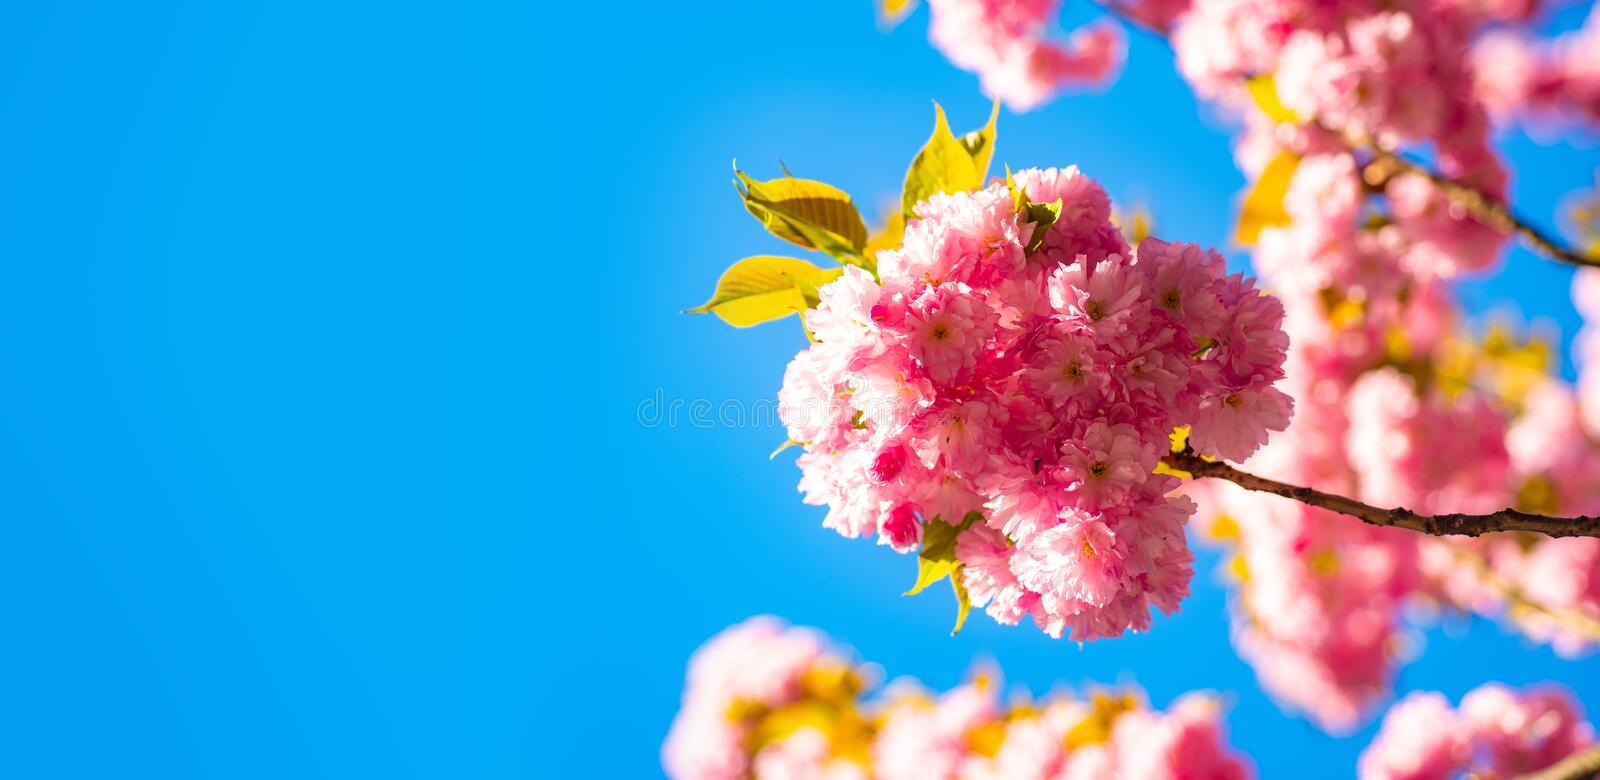 Cherry blossom. Sacura cherry-tree. For easter and spring greeting cards with copy space. Spring border background with royalty free stock photography